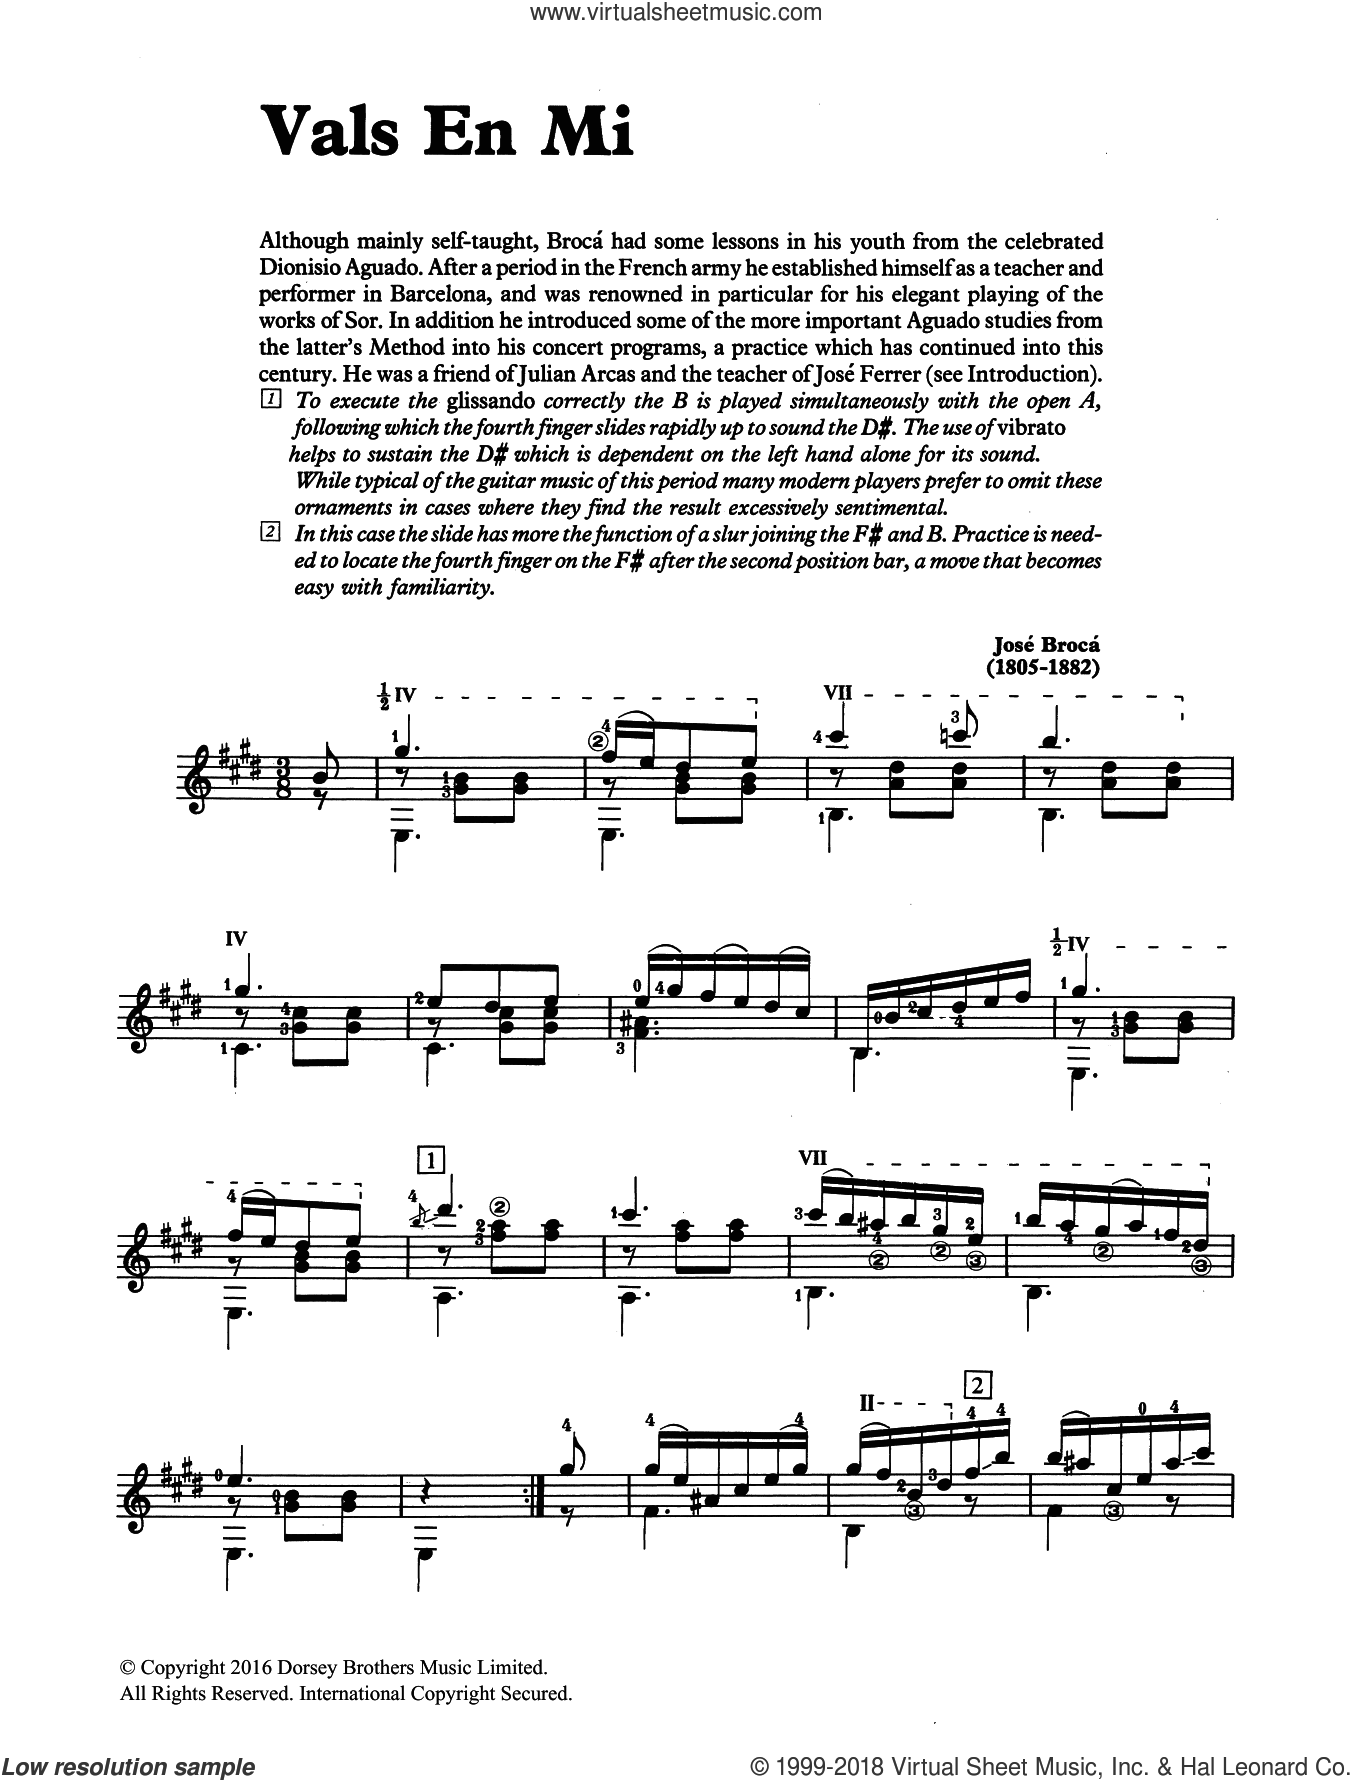 Vals En Mi sheet music for guitar solo by José Brocá and Jose Broca, classical score, intermediate skill level